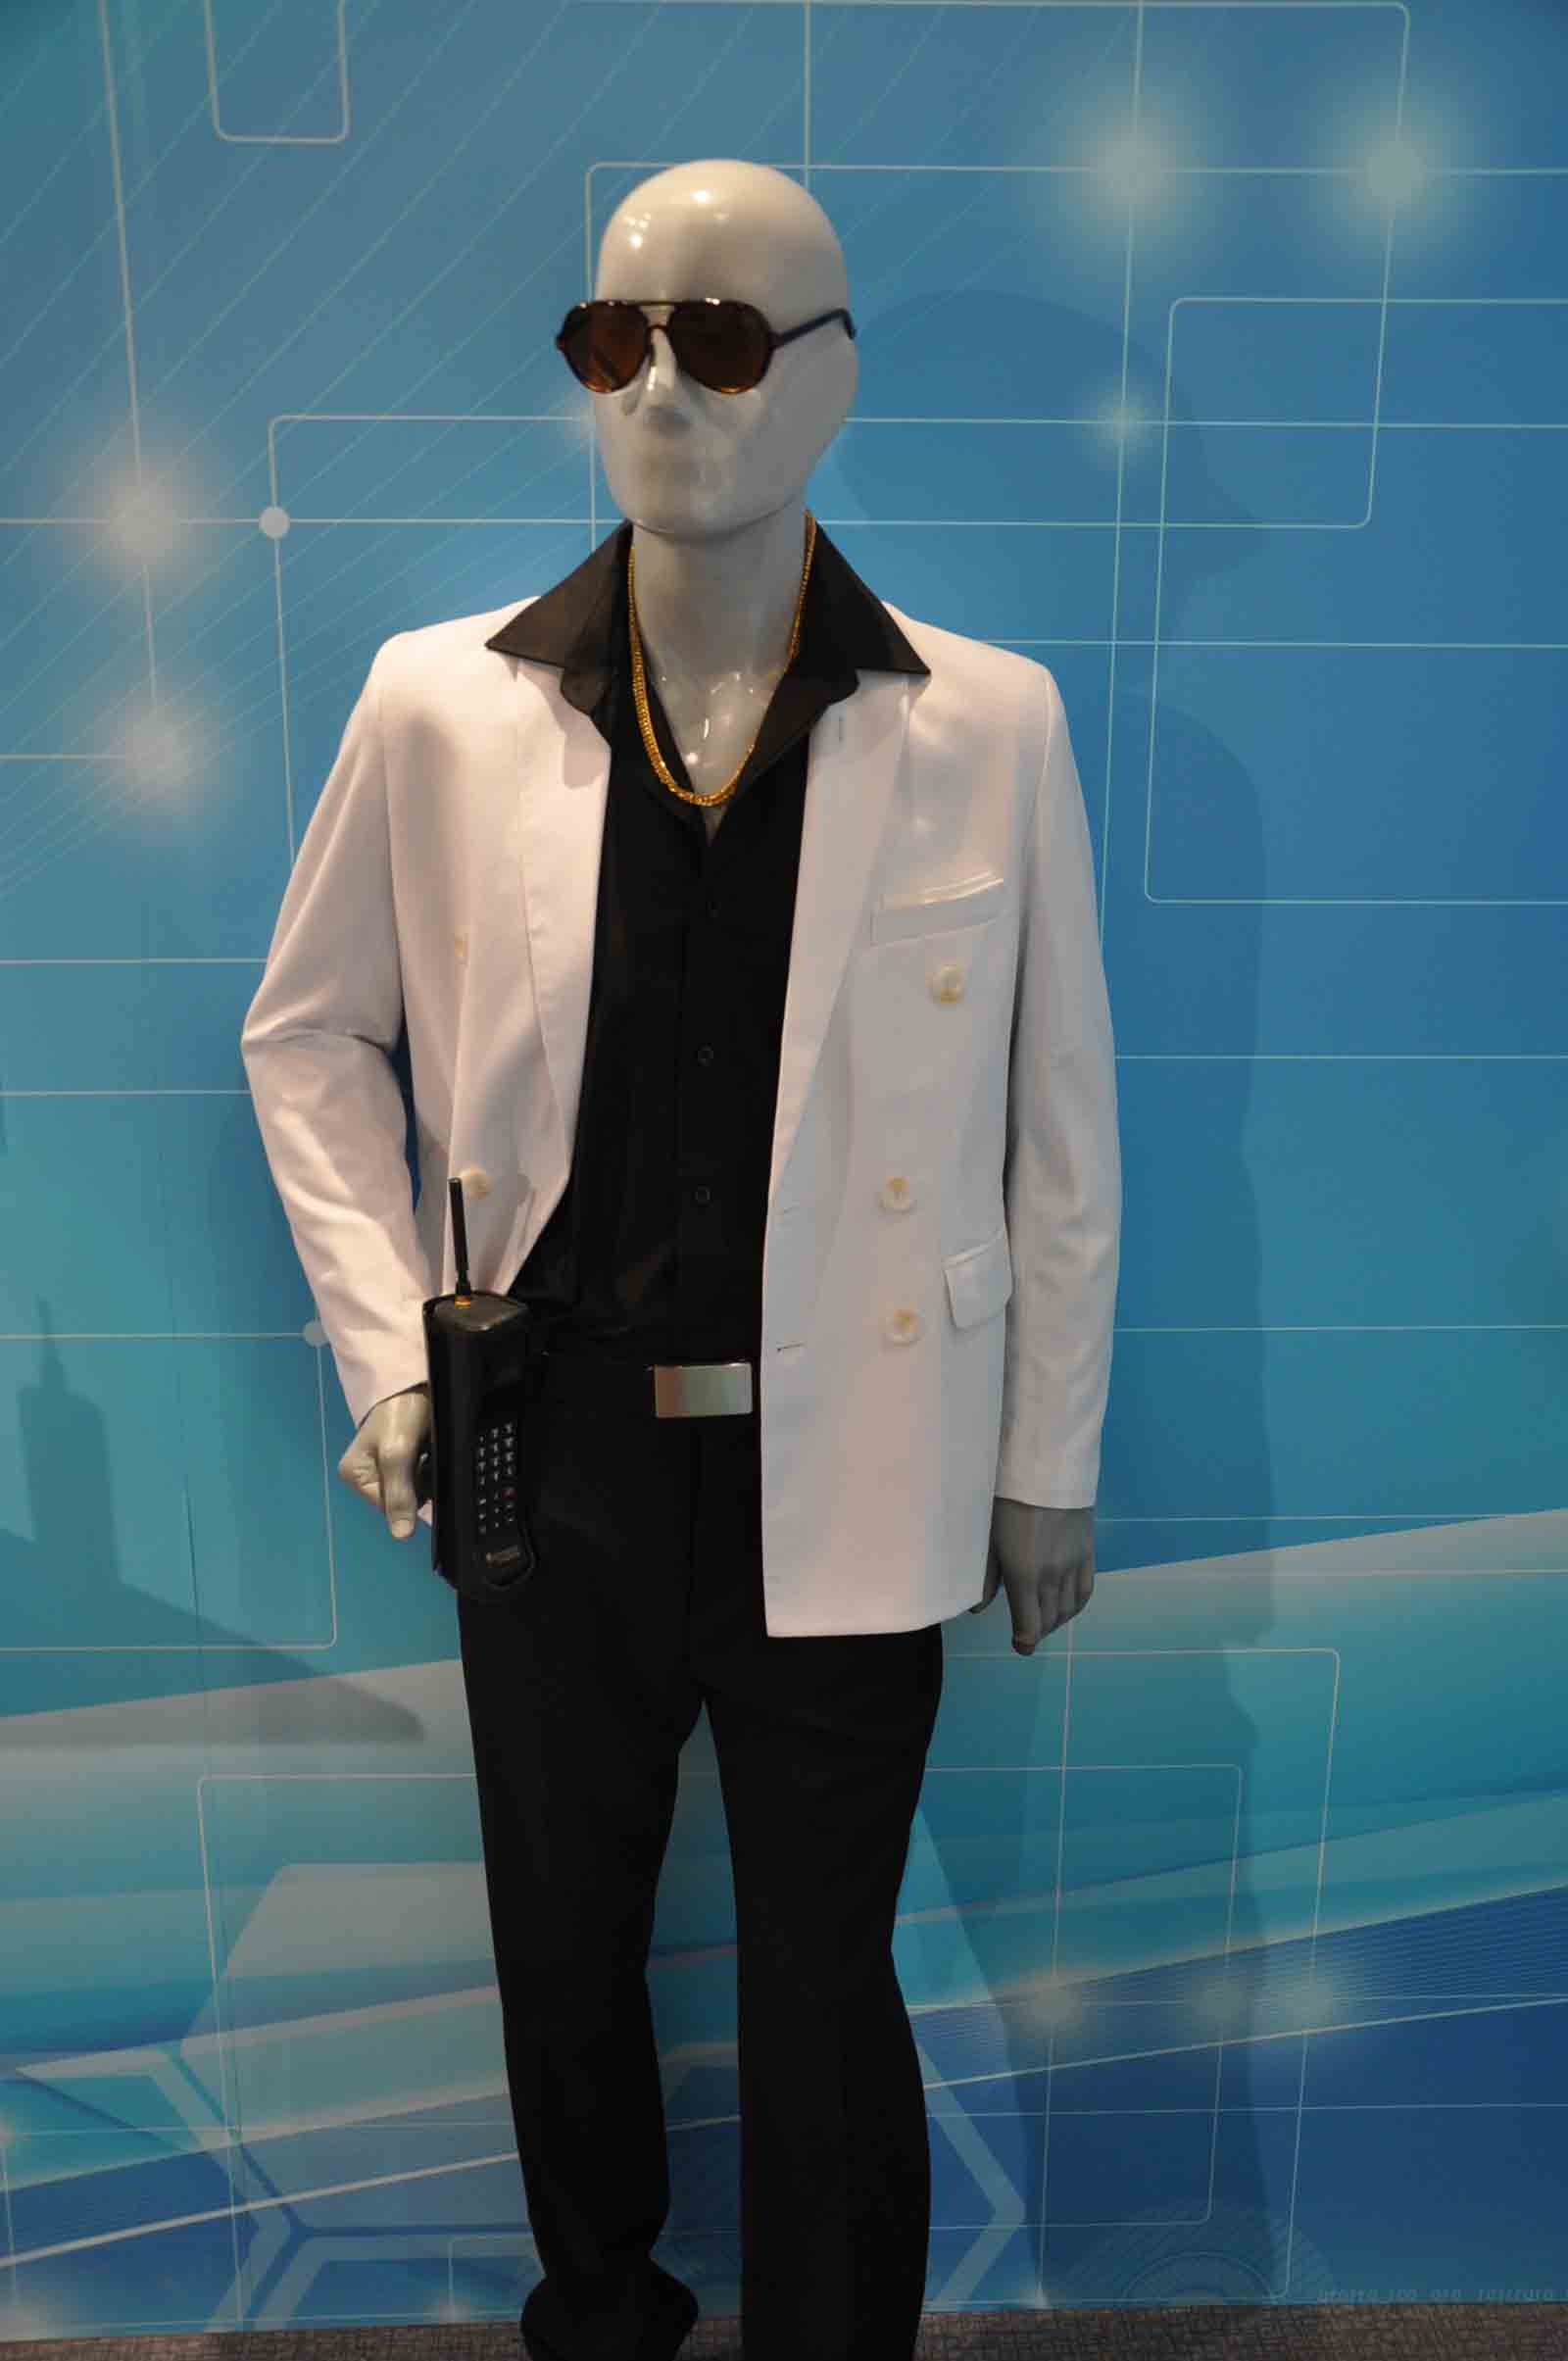 Communications Museum mannequin with mobile phone